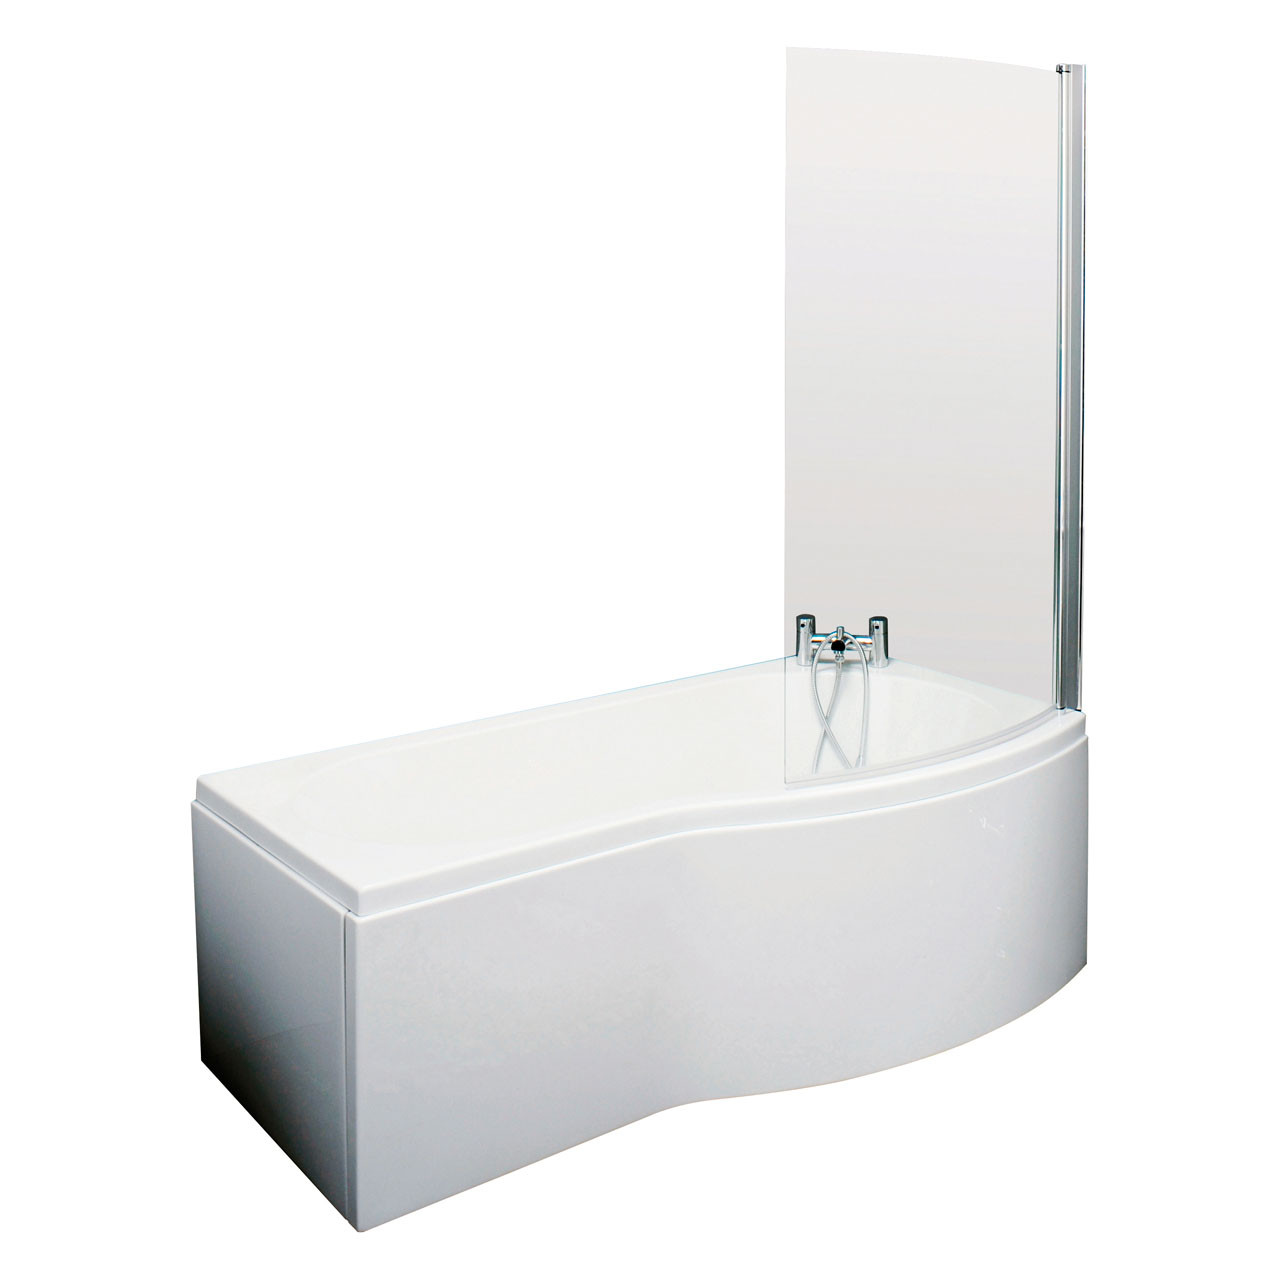 Premier Square Right Hand 1600mm Shower Bath - BMBS1685R